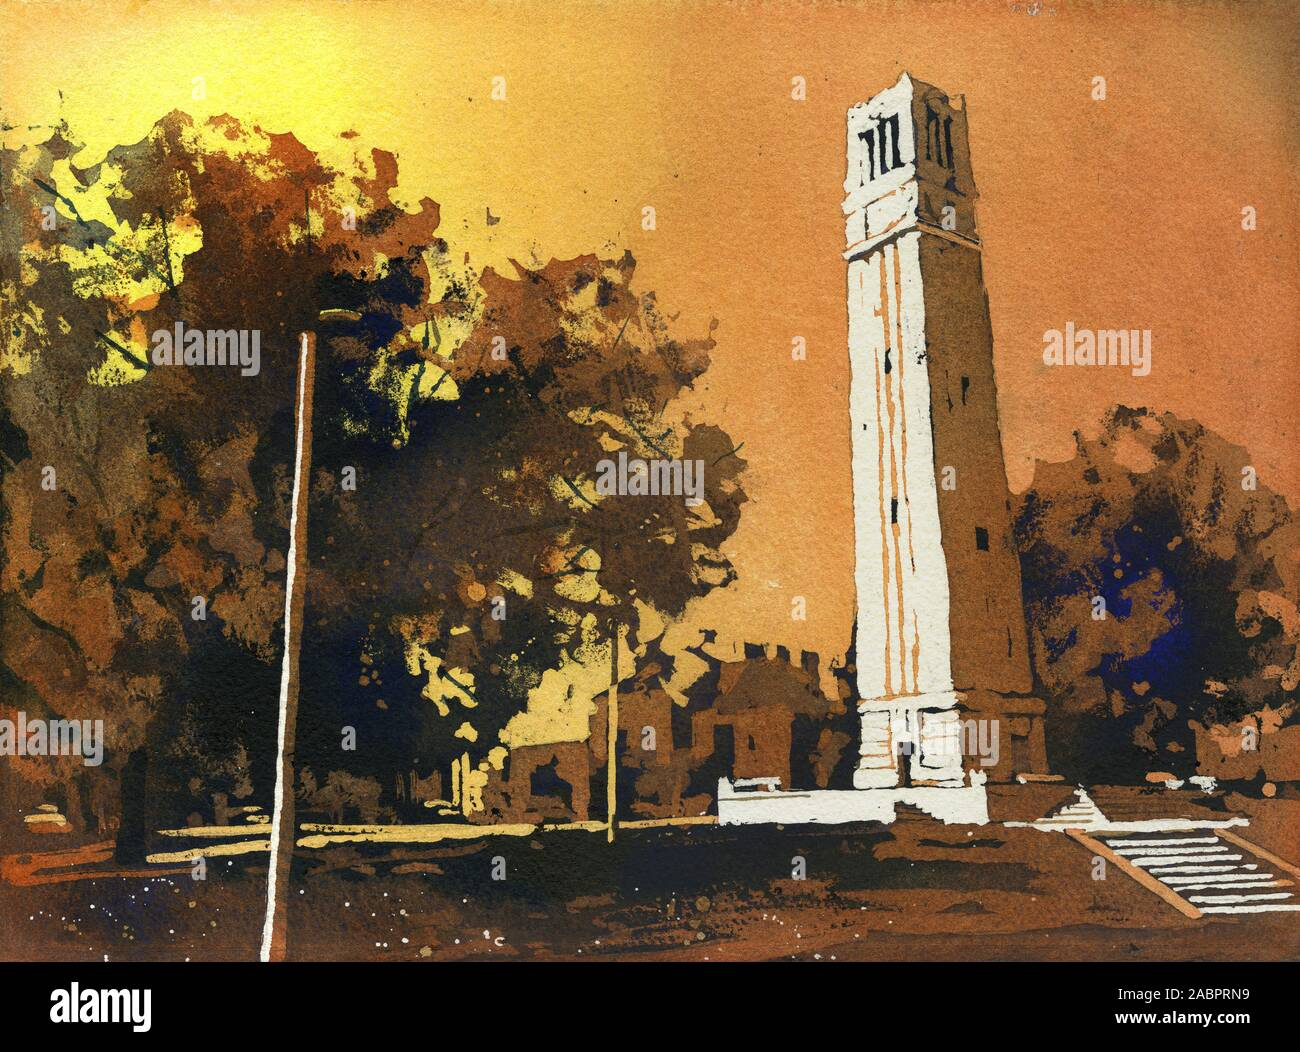 Painting of the North Carolina Statue University Bell-Tower in Raleigh, NC at dusk. NCSU artwork bell tower Stock Photo